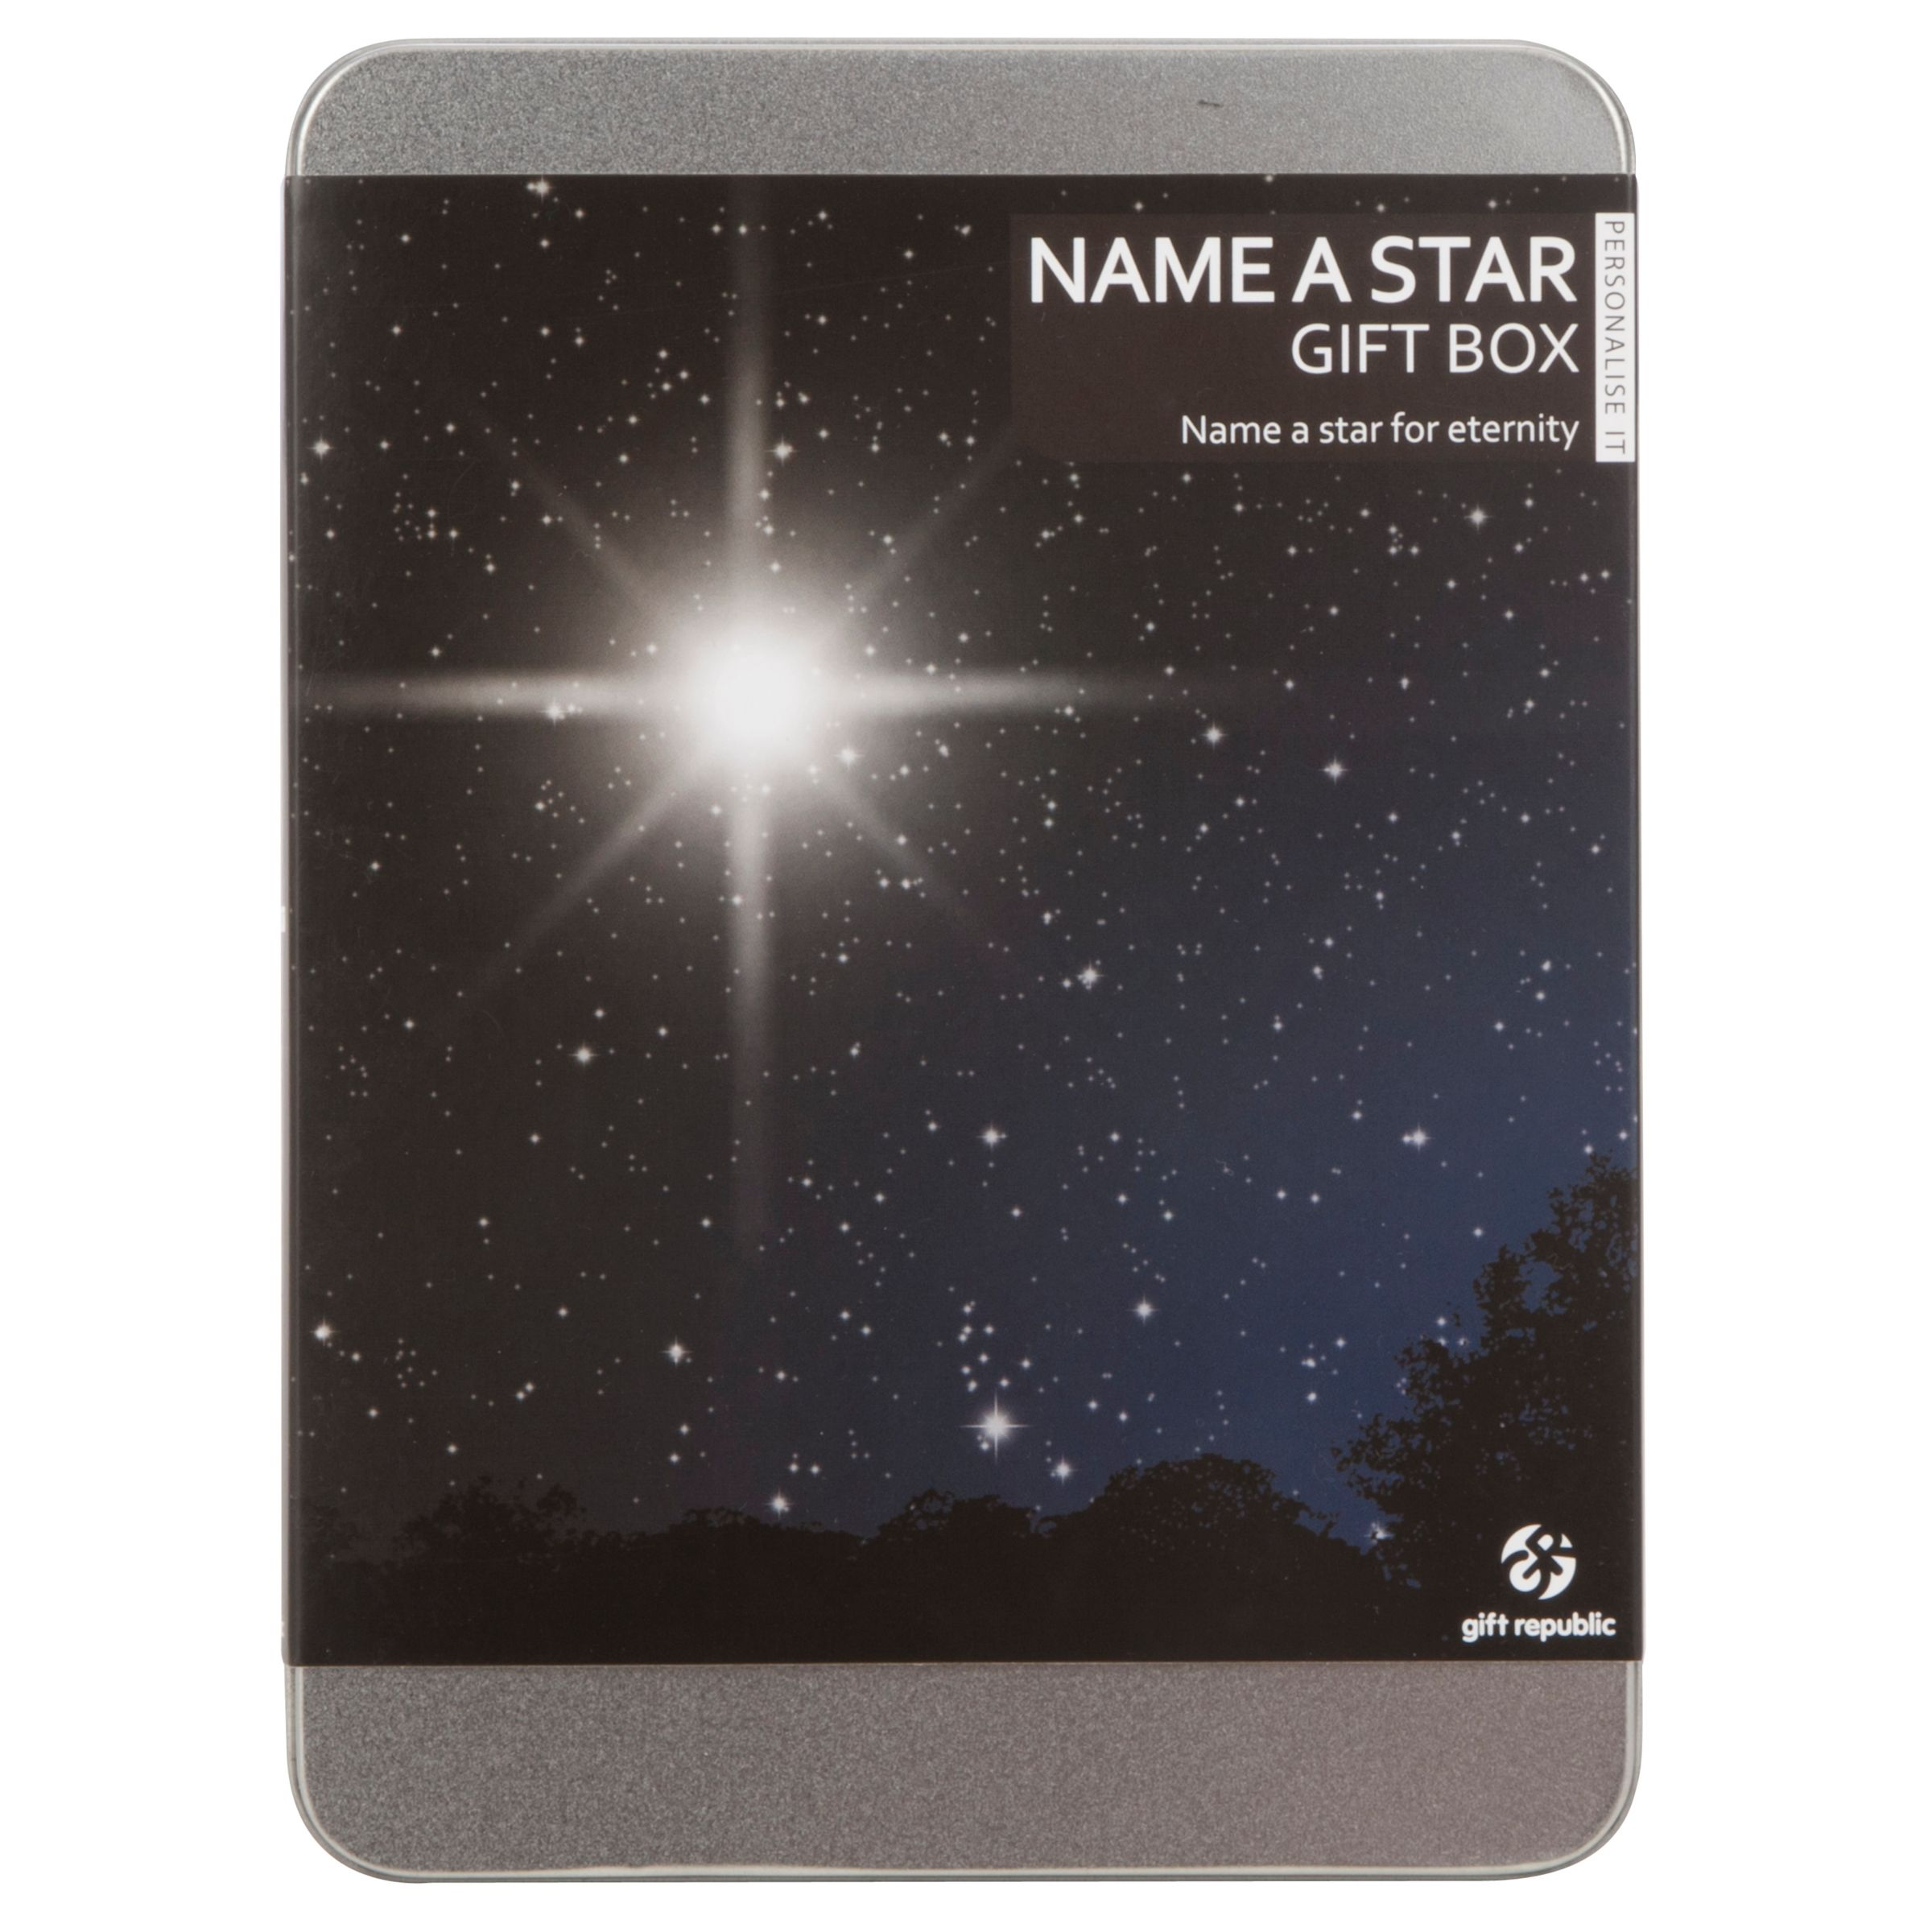 Gift Republic Name a Star Gift